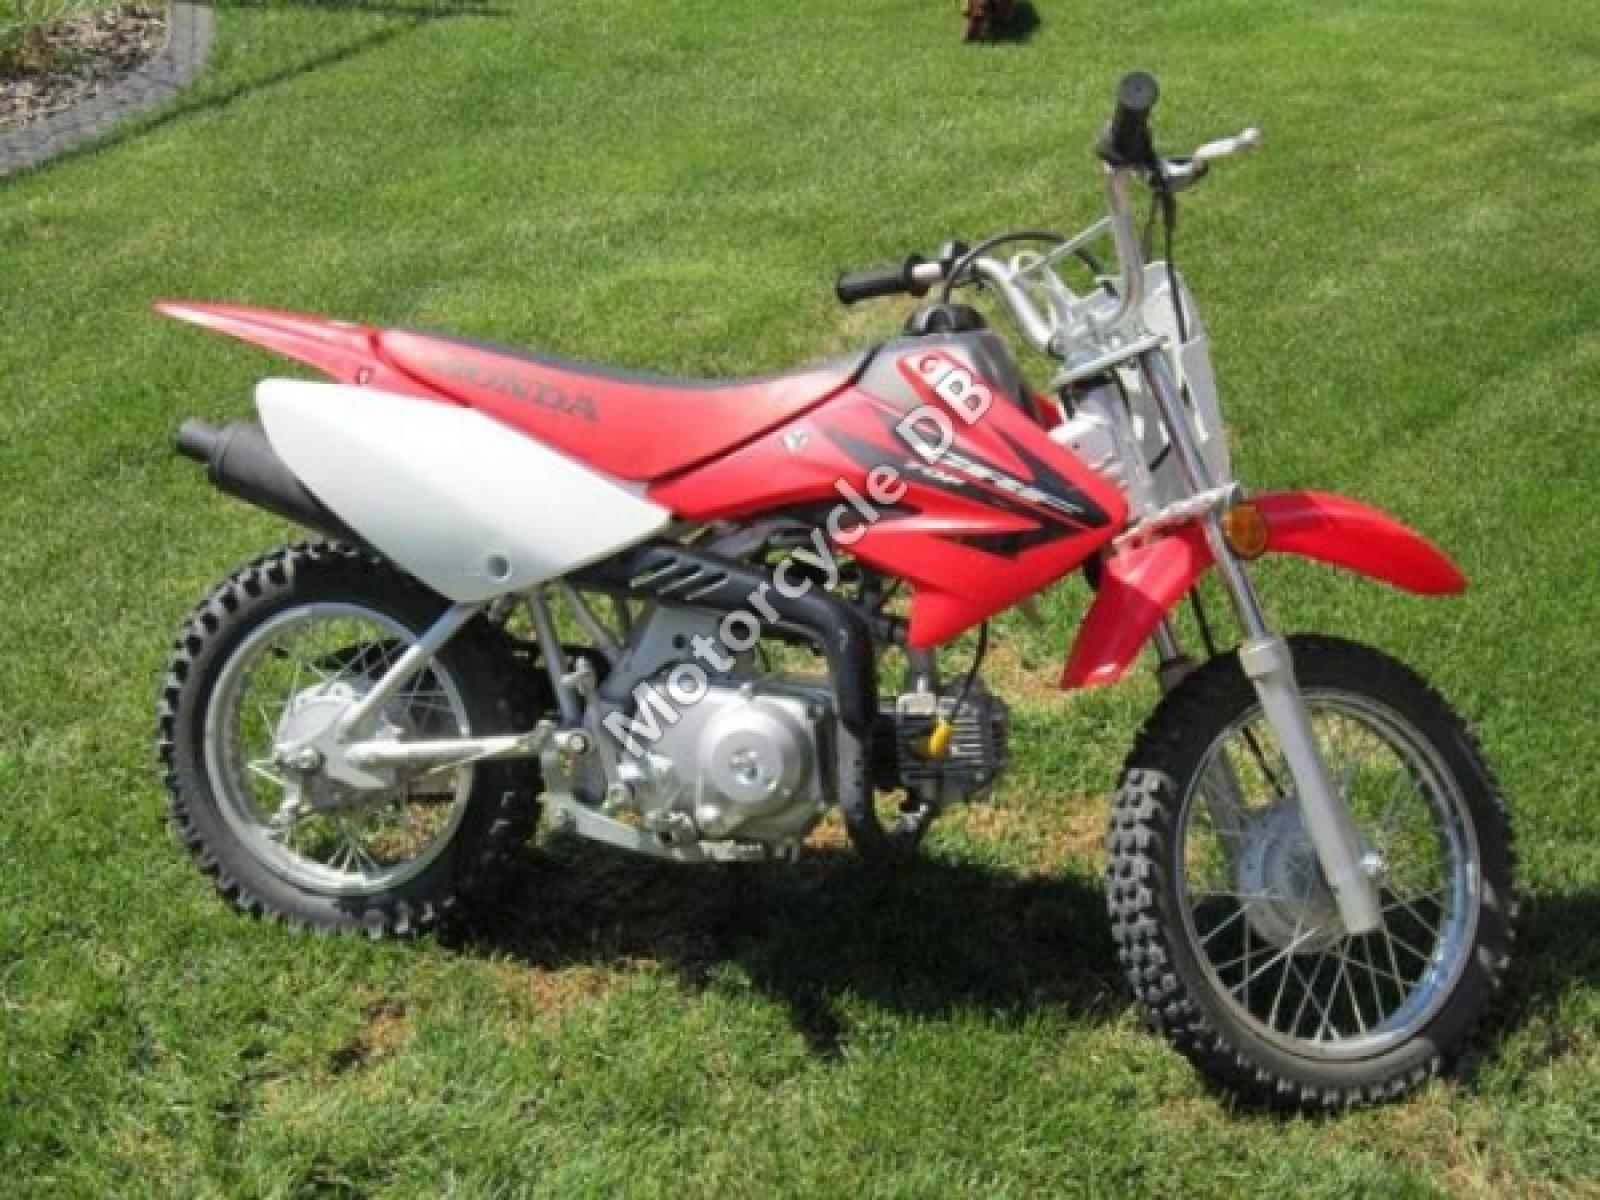 2006 Honda Crf 70 F Pics Specs And Information 70cc Dirt Bike 25159